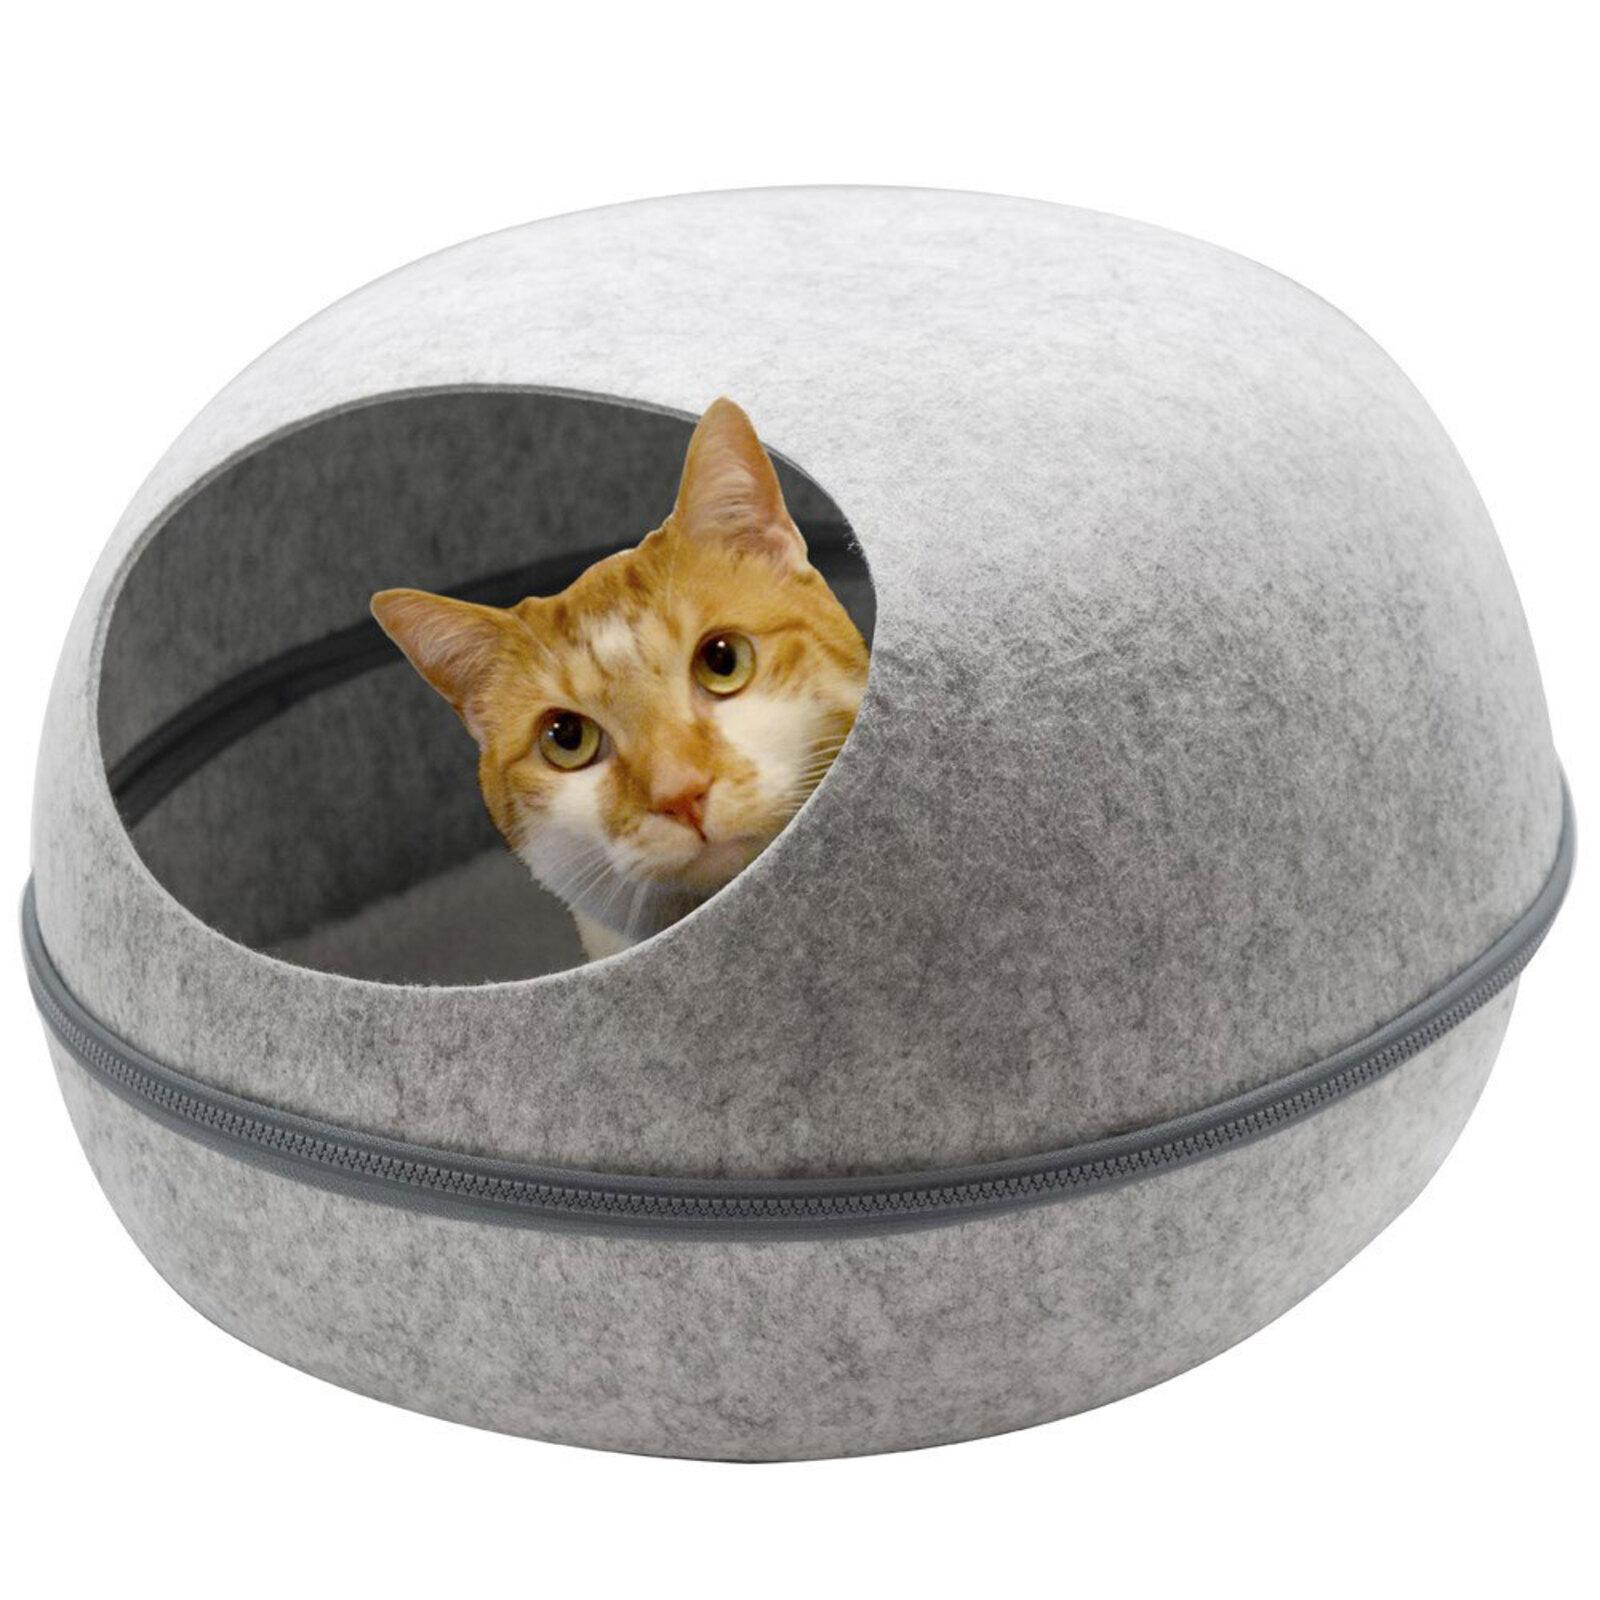 Paws & Claws 48x38cm Pets/Kitten/Cat Cave Bed w/ Washable Cushion Large Grey